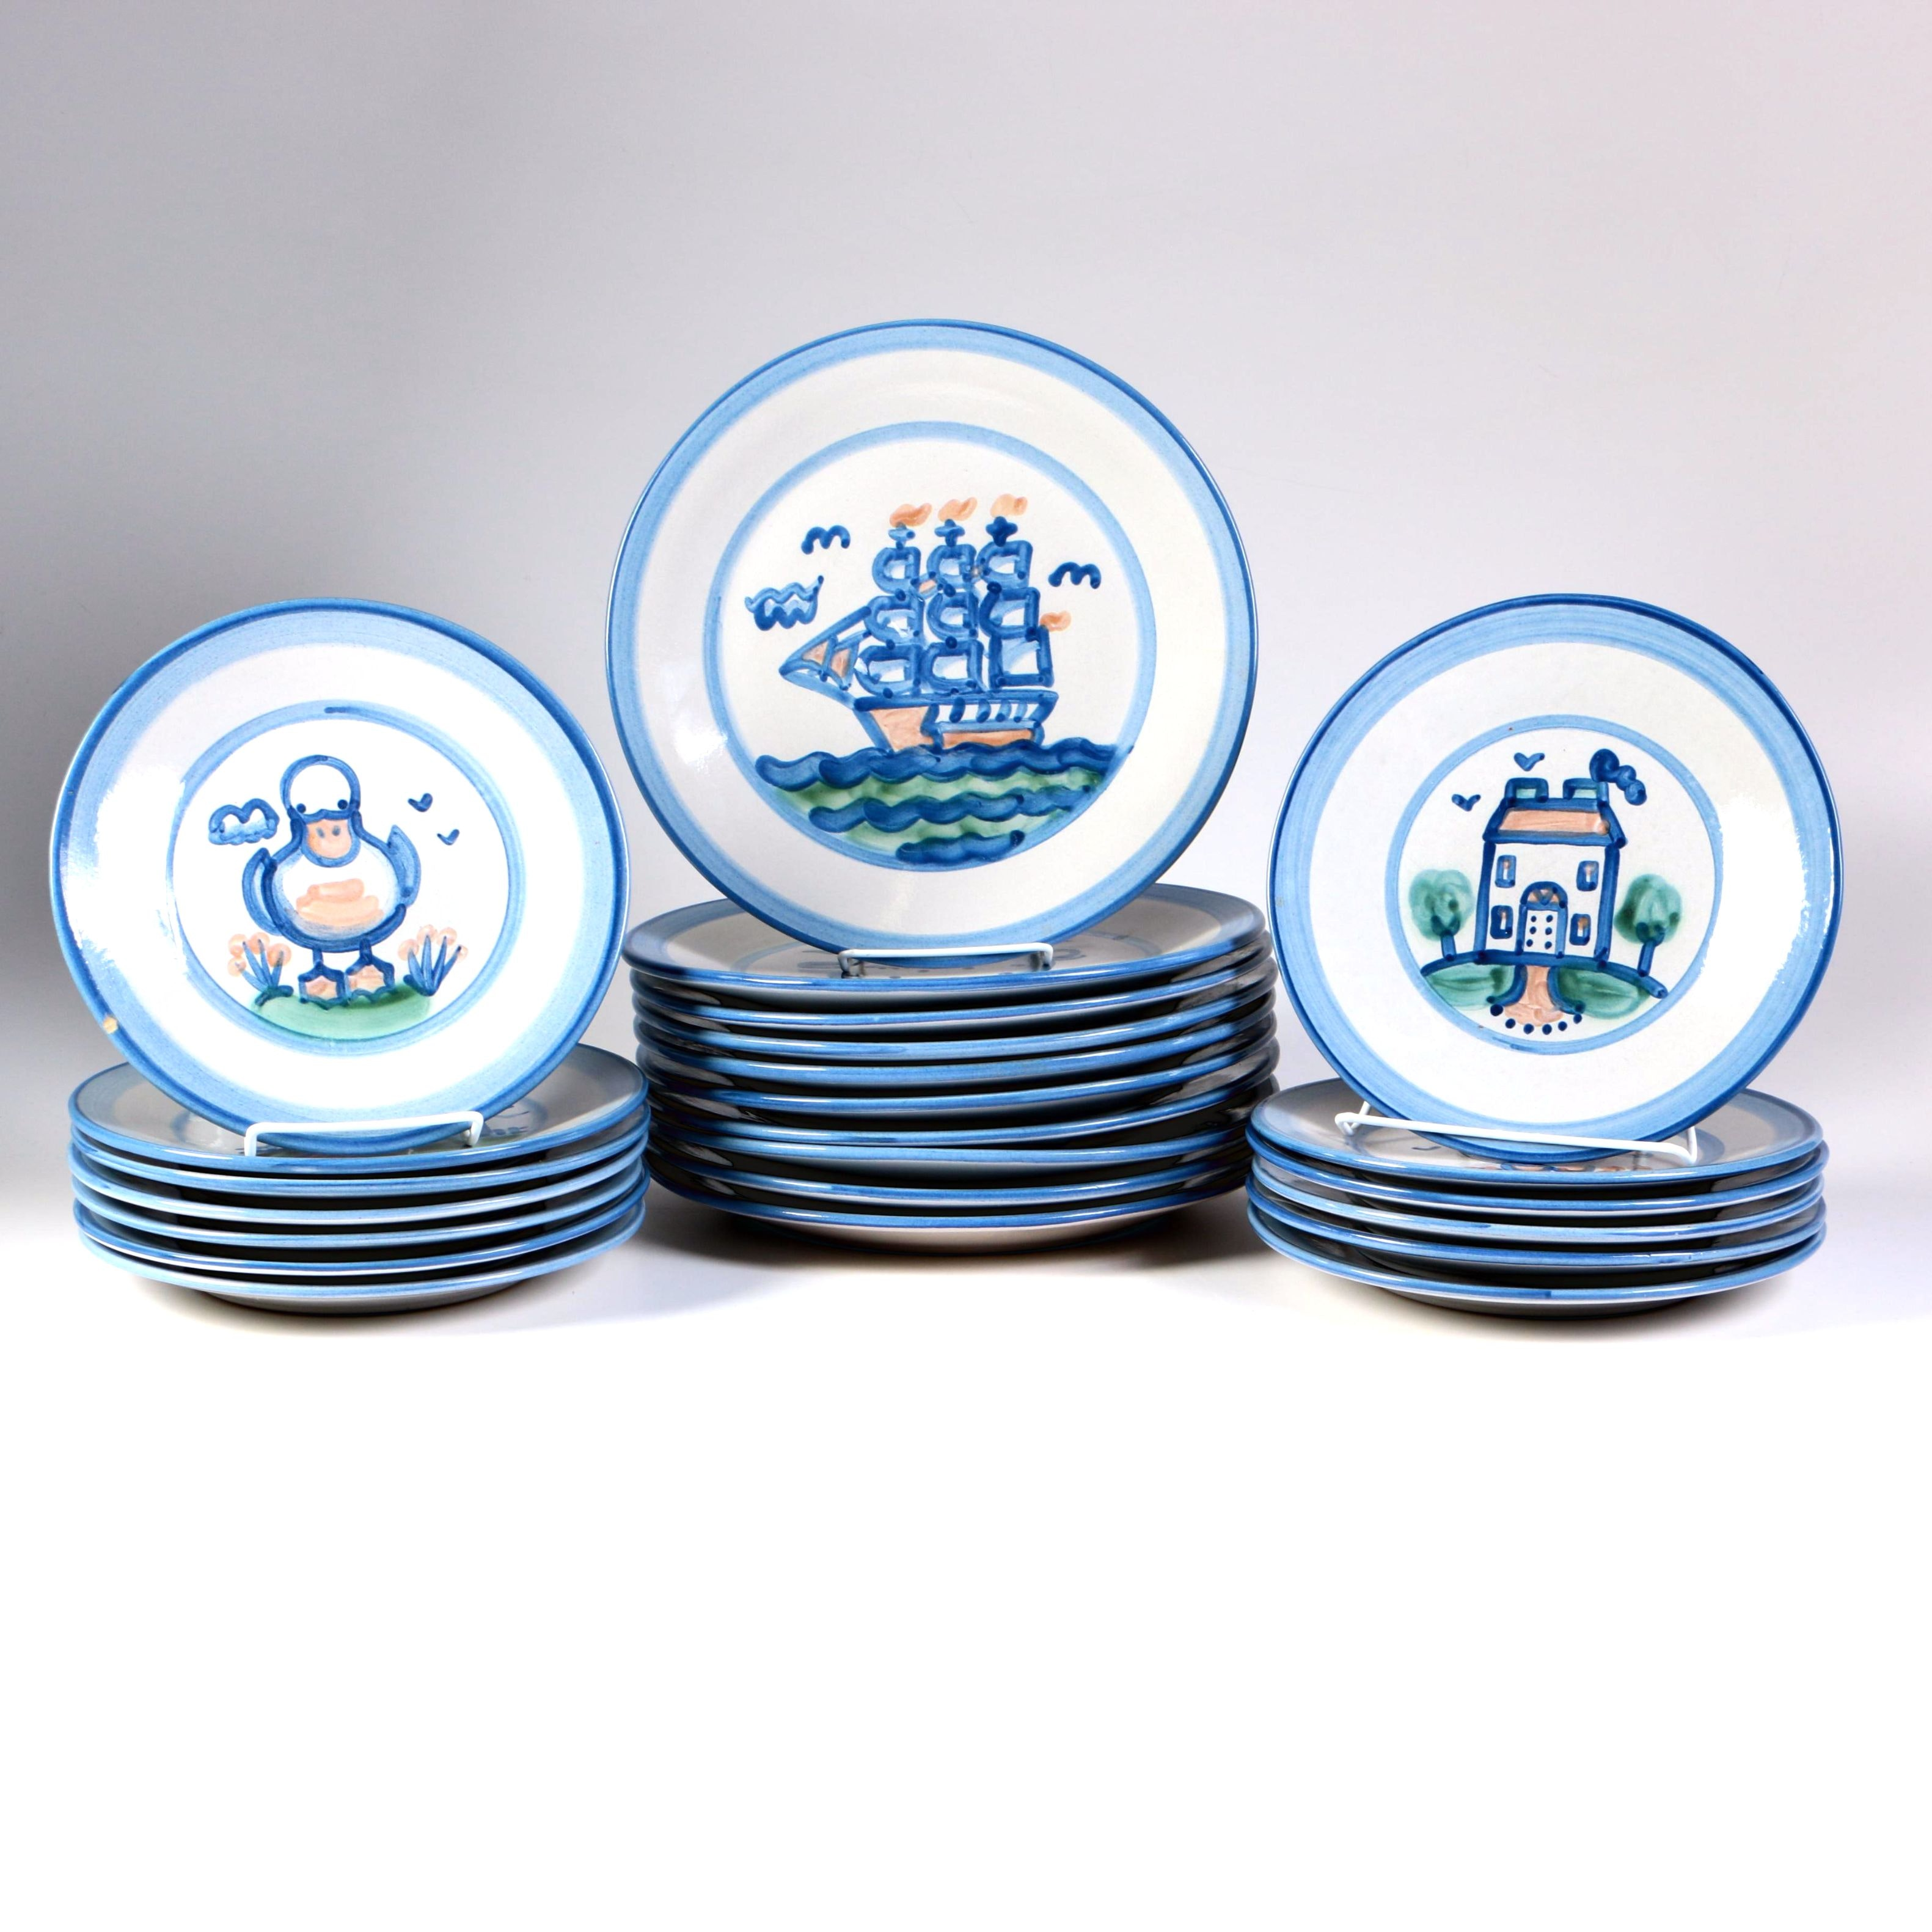 M. Hadley Stoneware Plate Collection